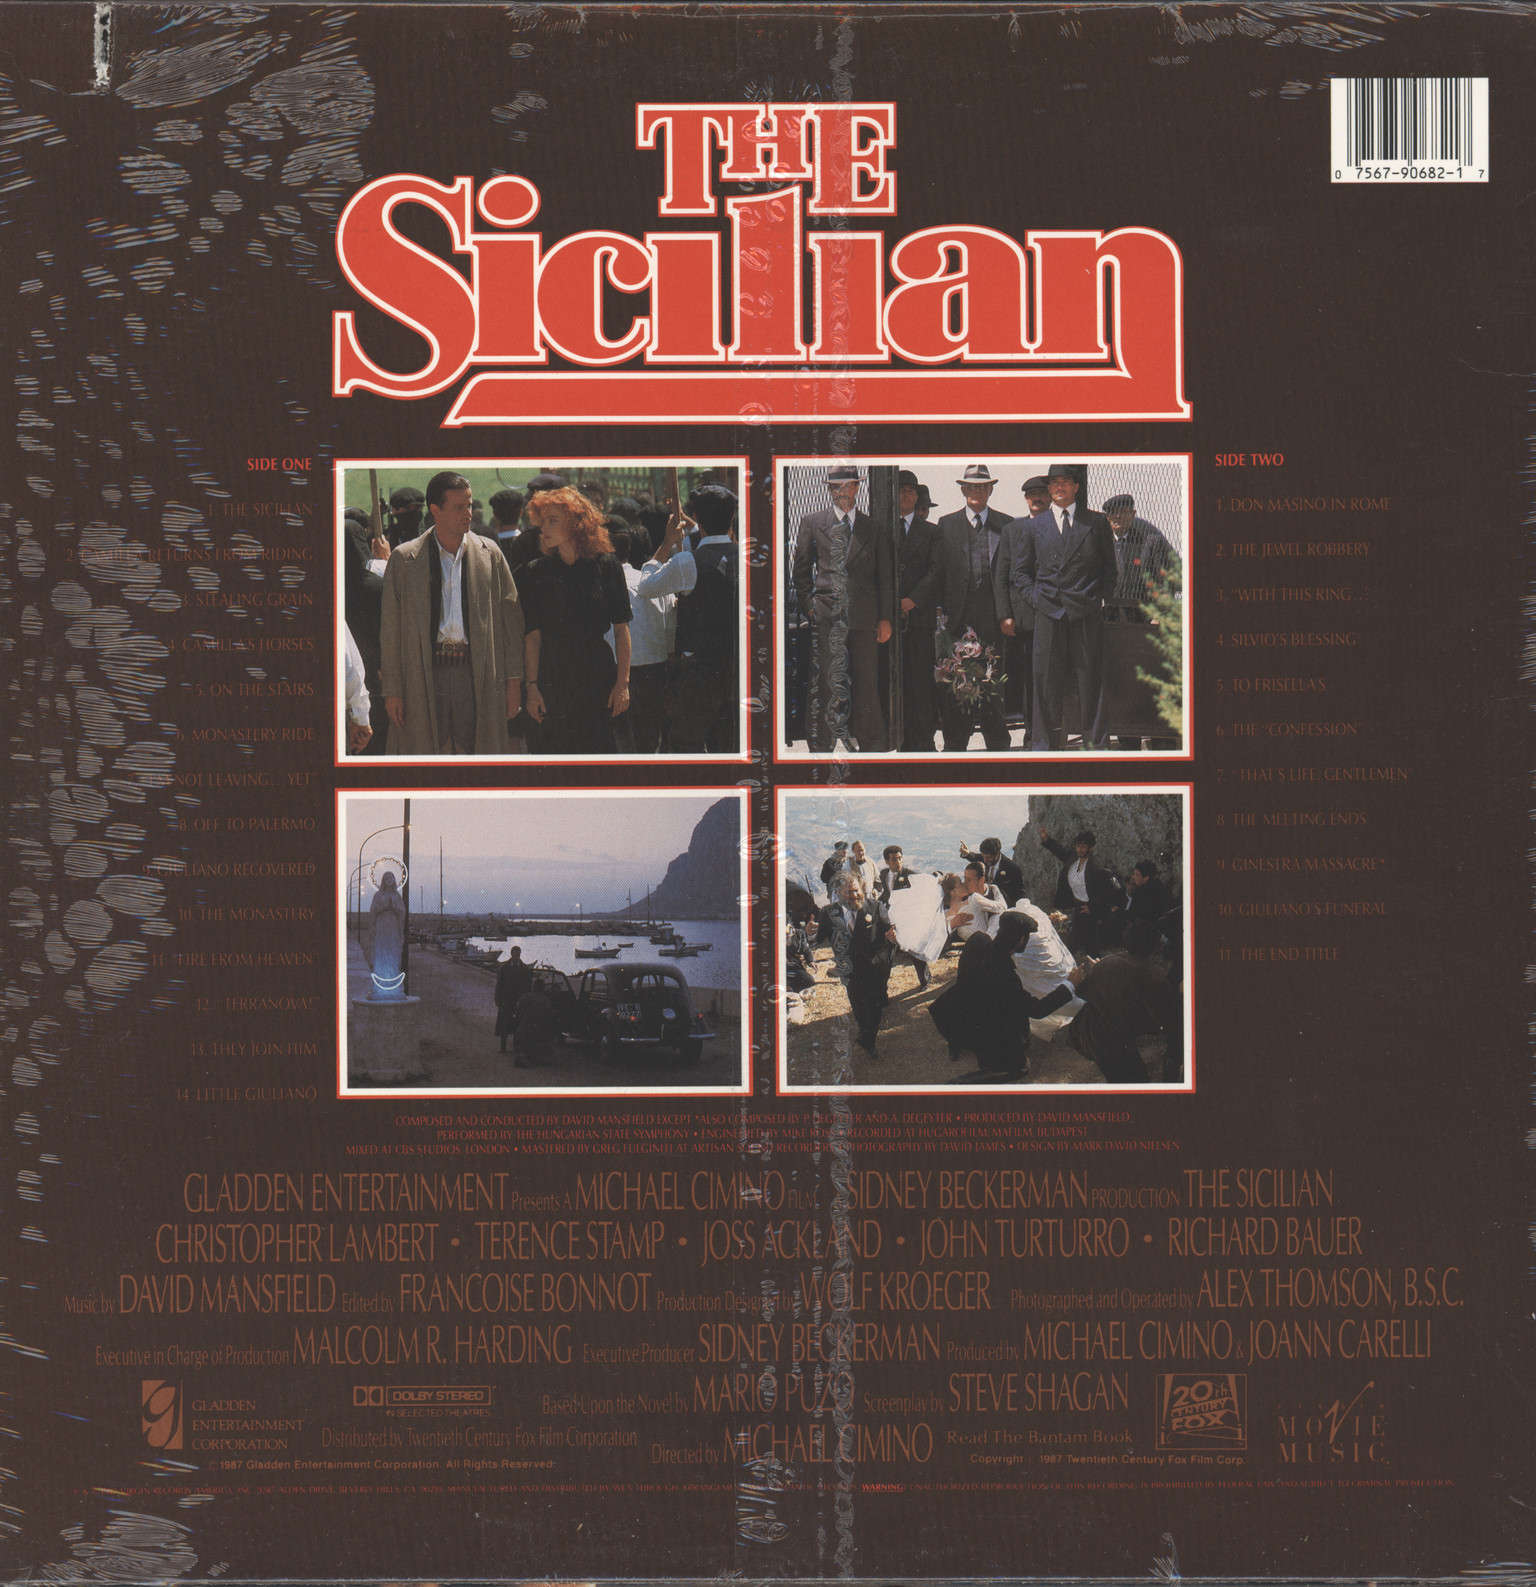 David Mansfield: The Sicilian (Original Motion Picture Soundtrack), LP (Vinyl)